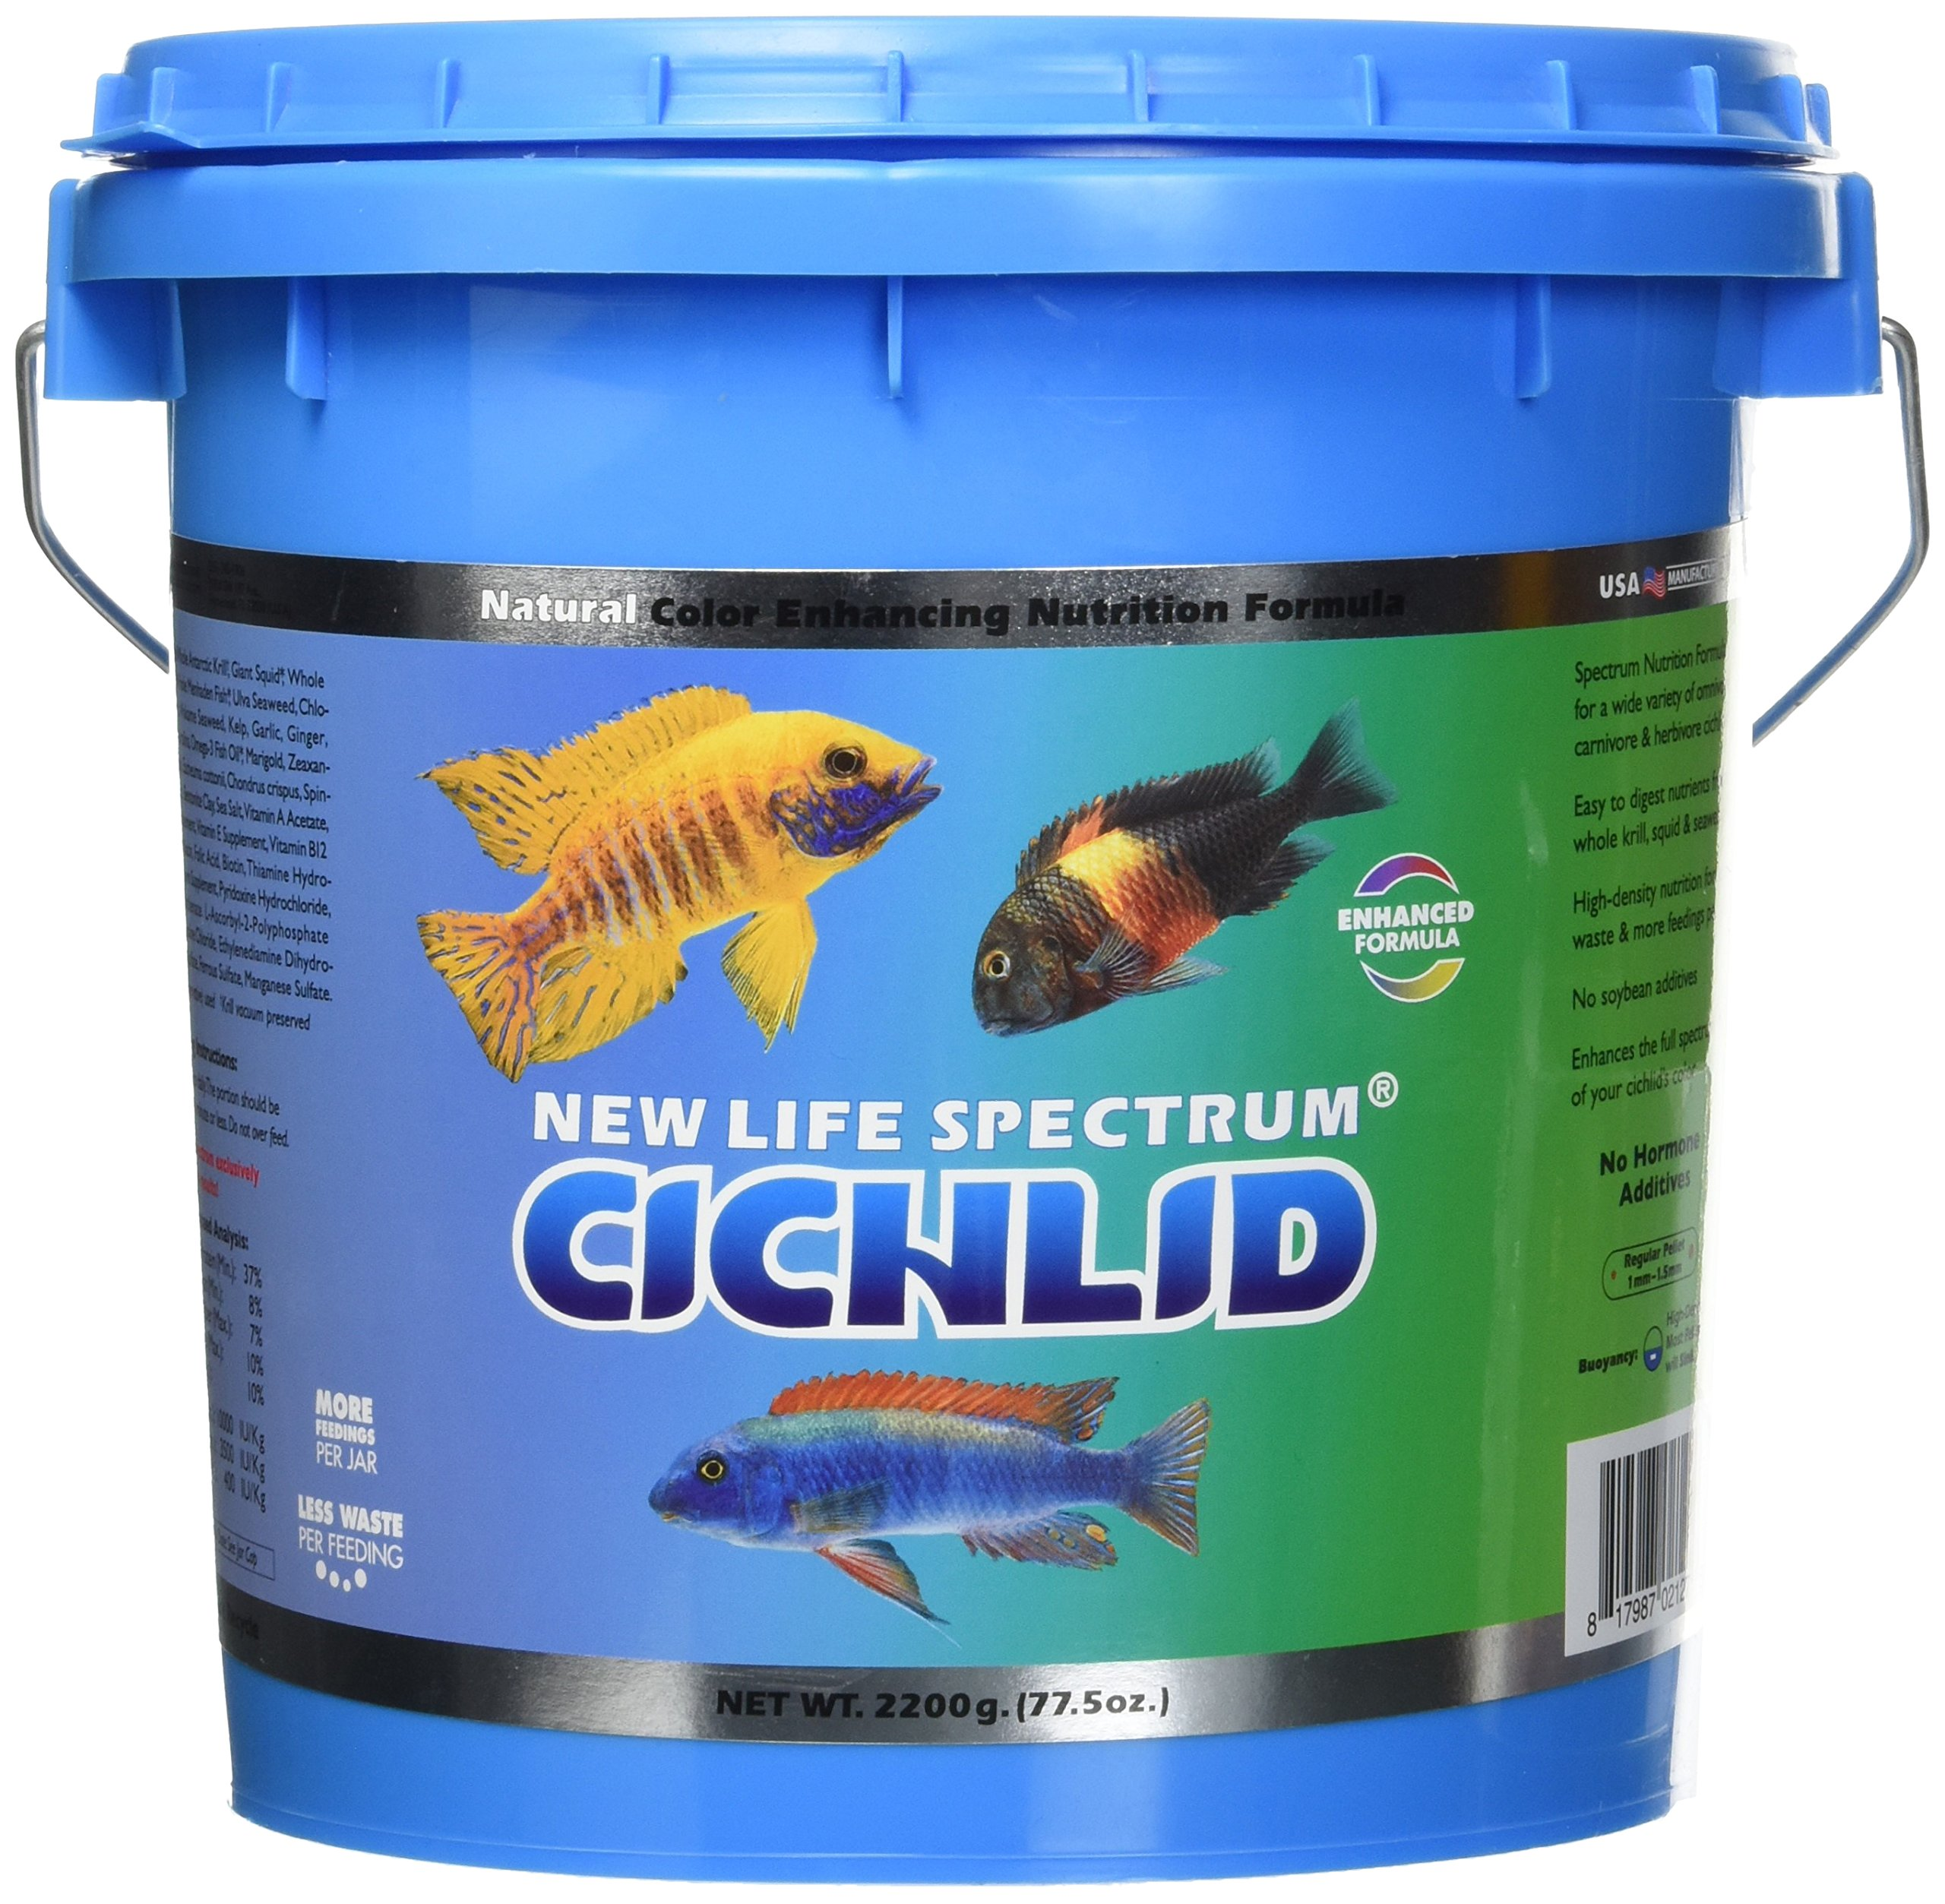 New Life Spectrum Naturox Series Cichlid Formula Supplement, 2200g by New Life Spectrum (Image #1)